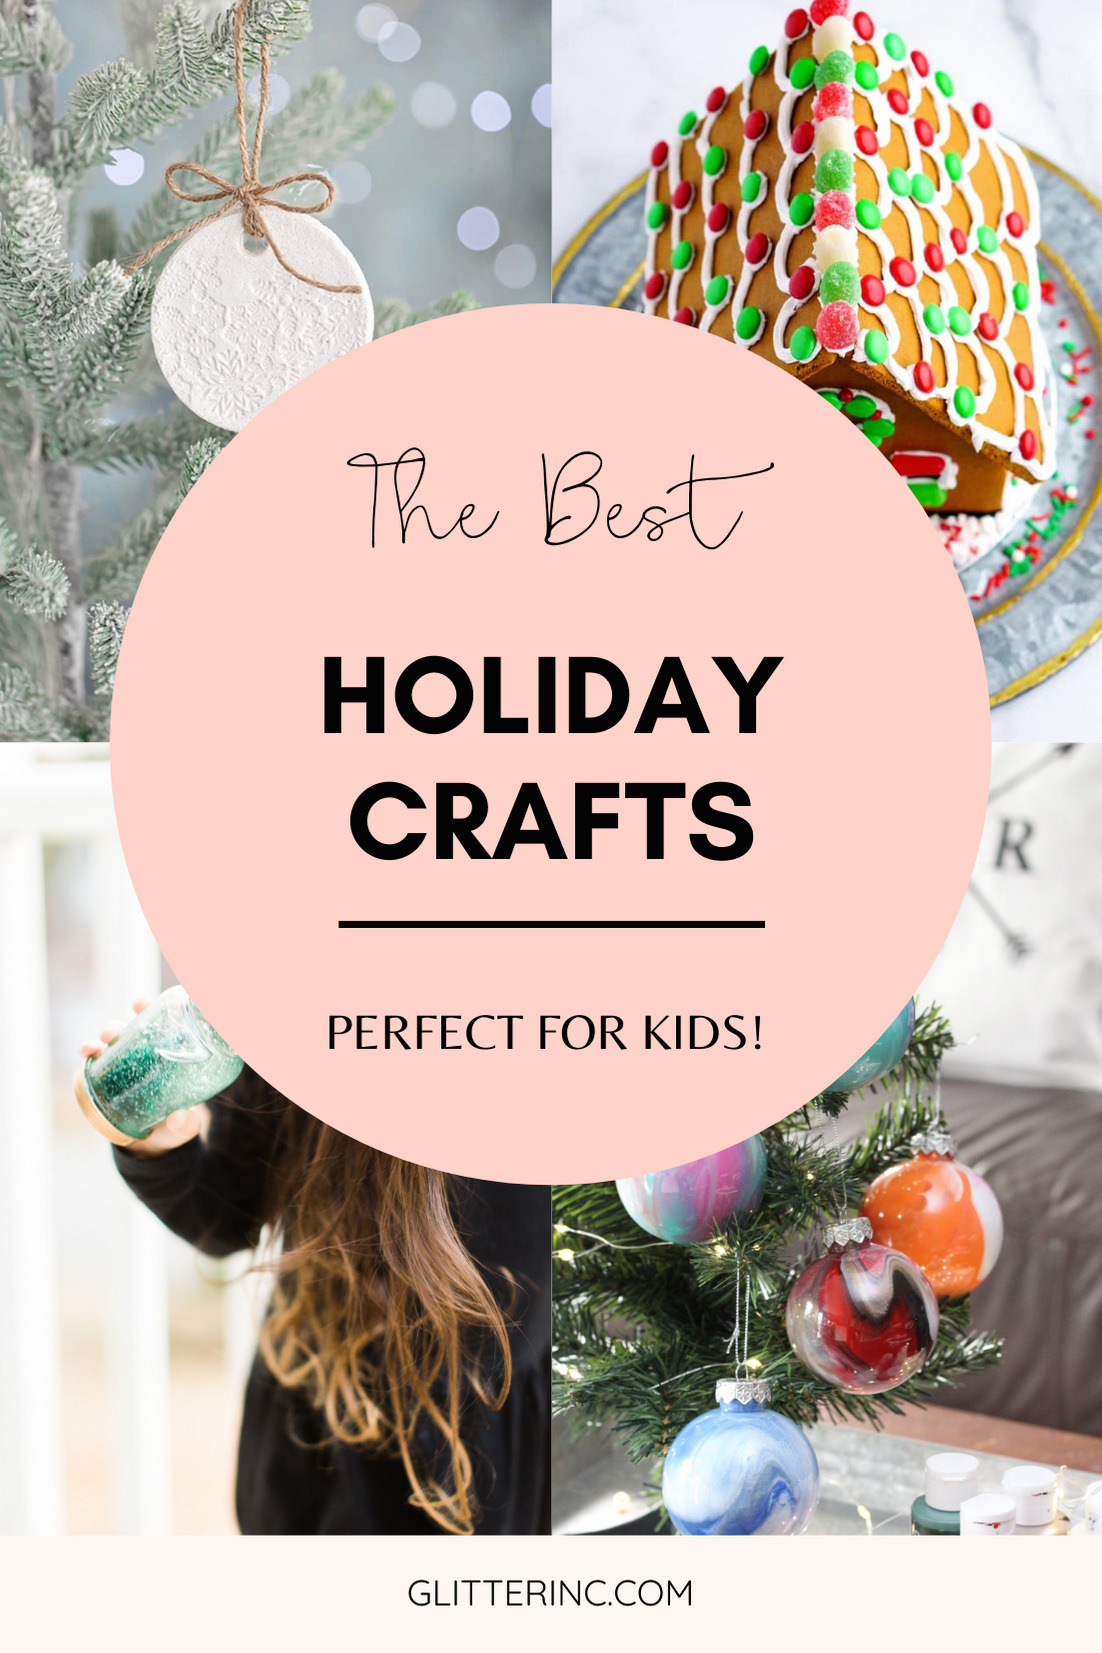 Get crafting with your kids this holiday season and make one of these 6 nostalgic and fun holiday crafts even young kids can pitch in on! These winter and Christmas crafts are sentimental and make for the sweetest keepsakes to use for years to come. | @glitterinclexi | GLITTERINC.COM